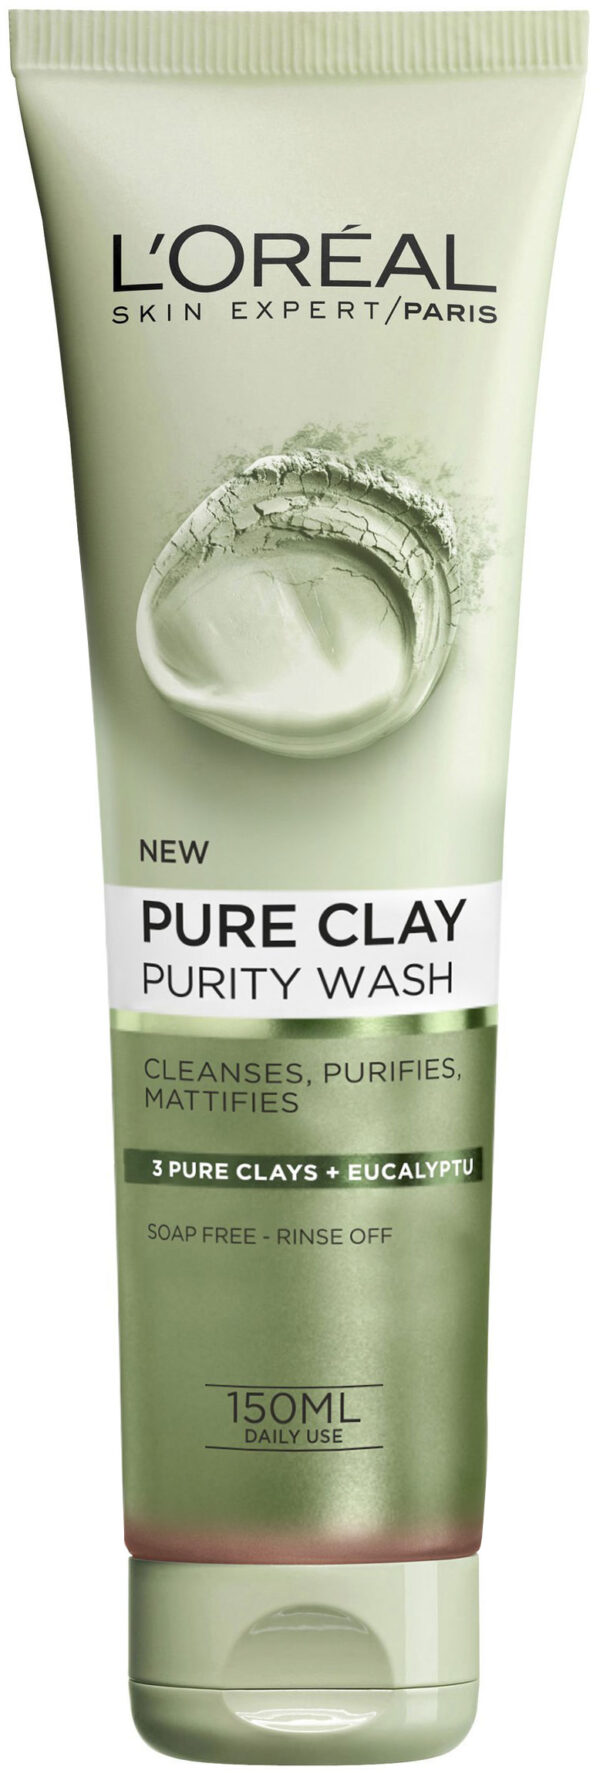 תרחיץ פנים ירוק 150 מ״ל Pure Clay Purity Wash 3 Pure Clays + Eucalyptu